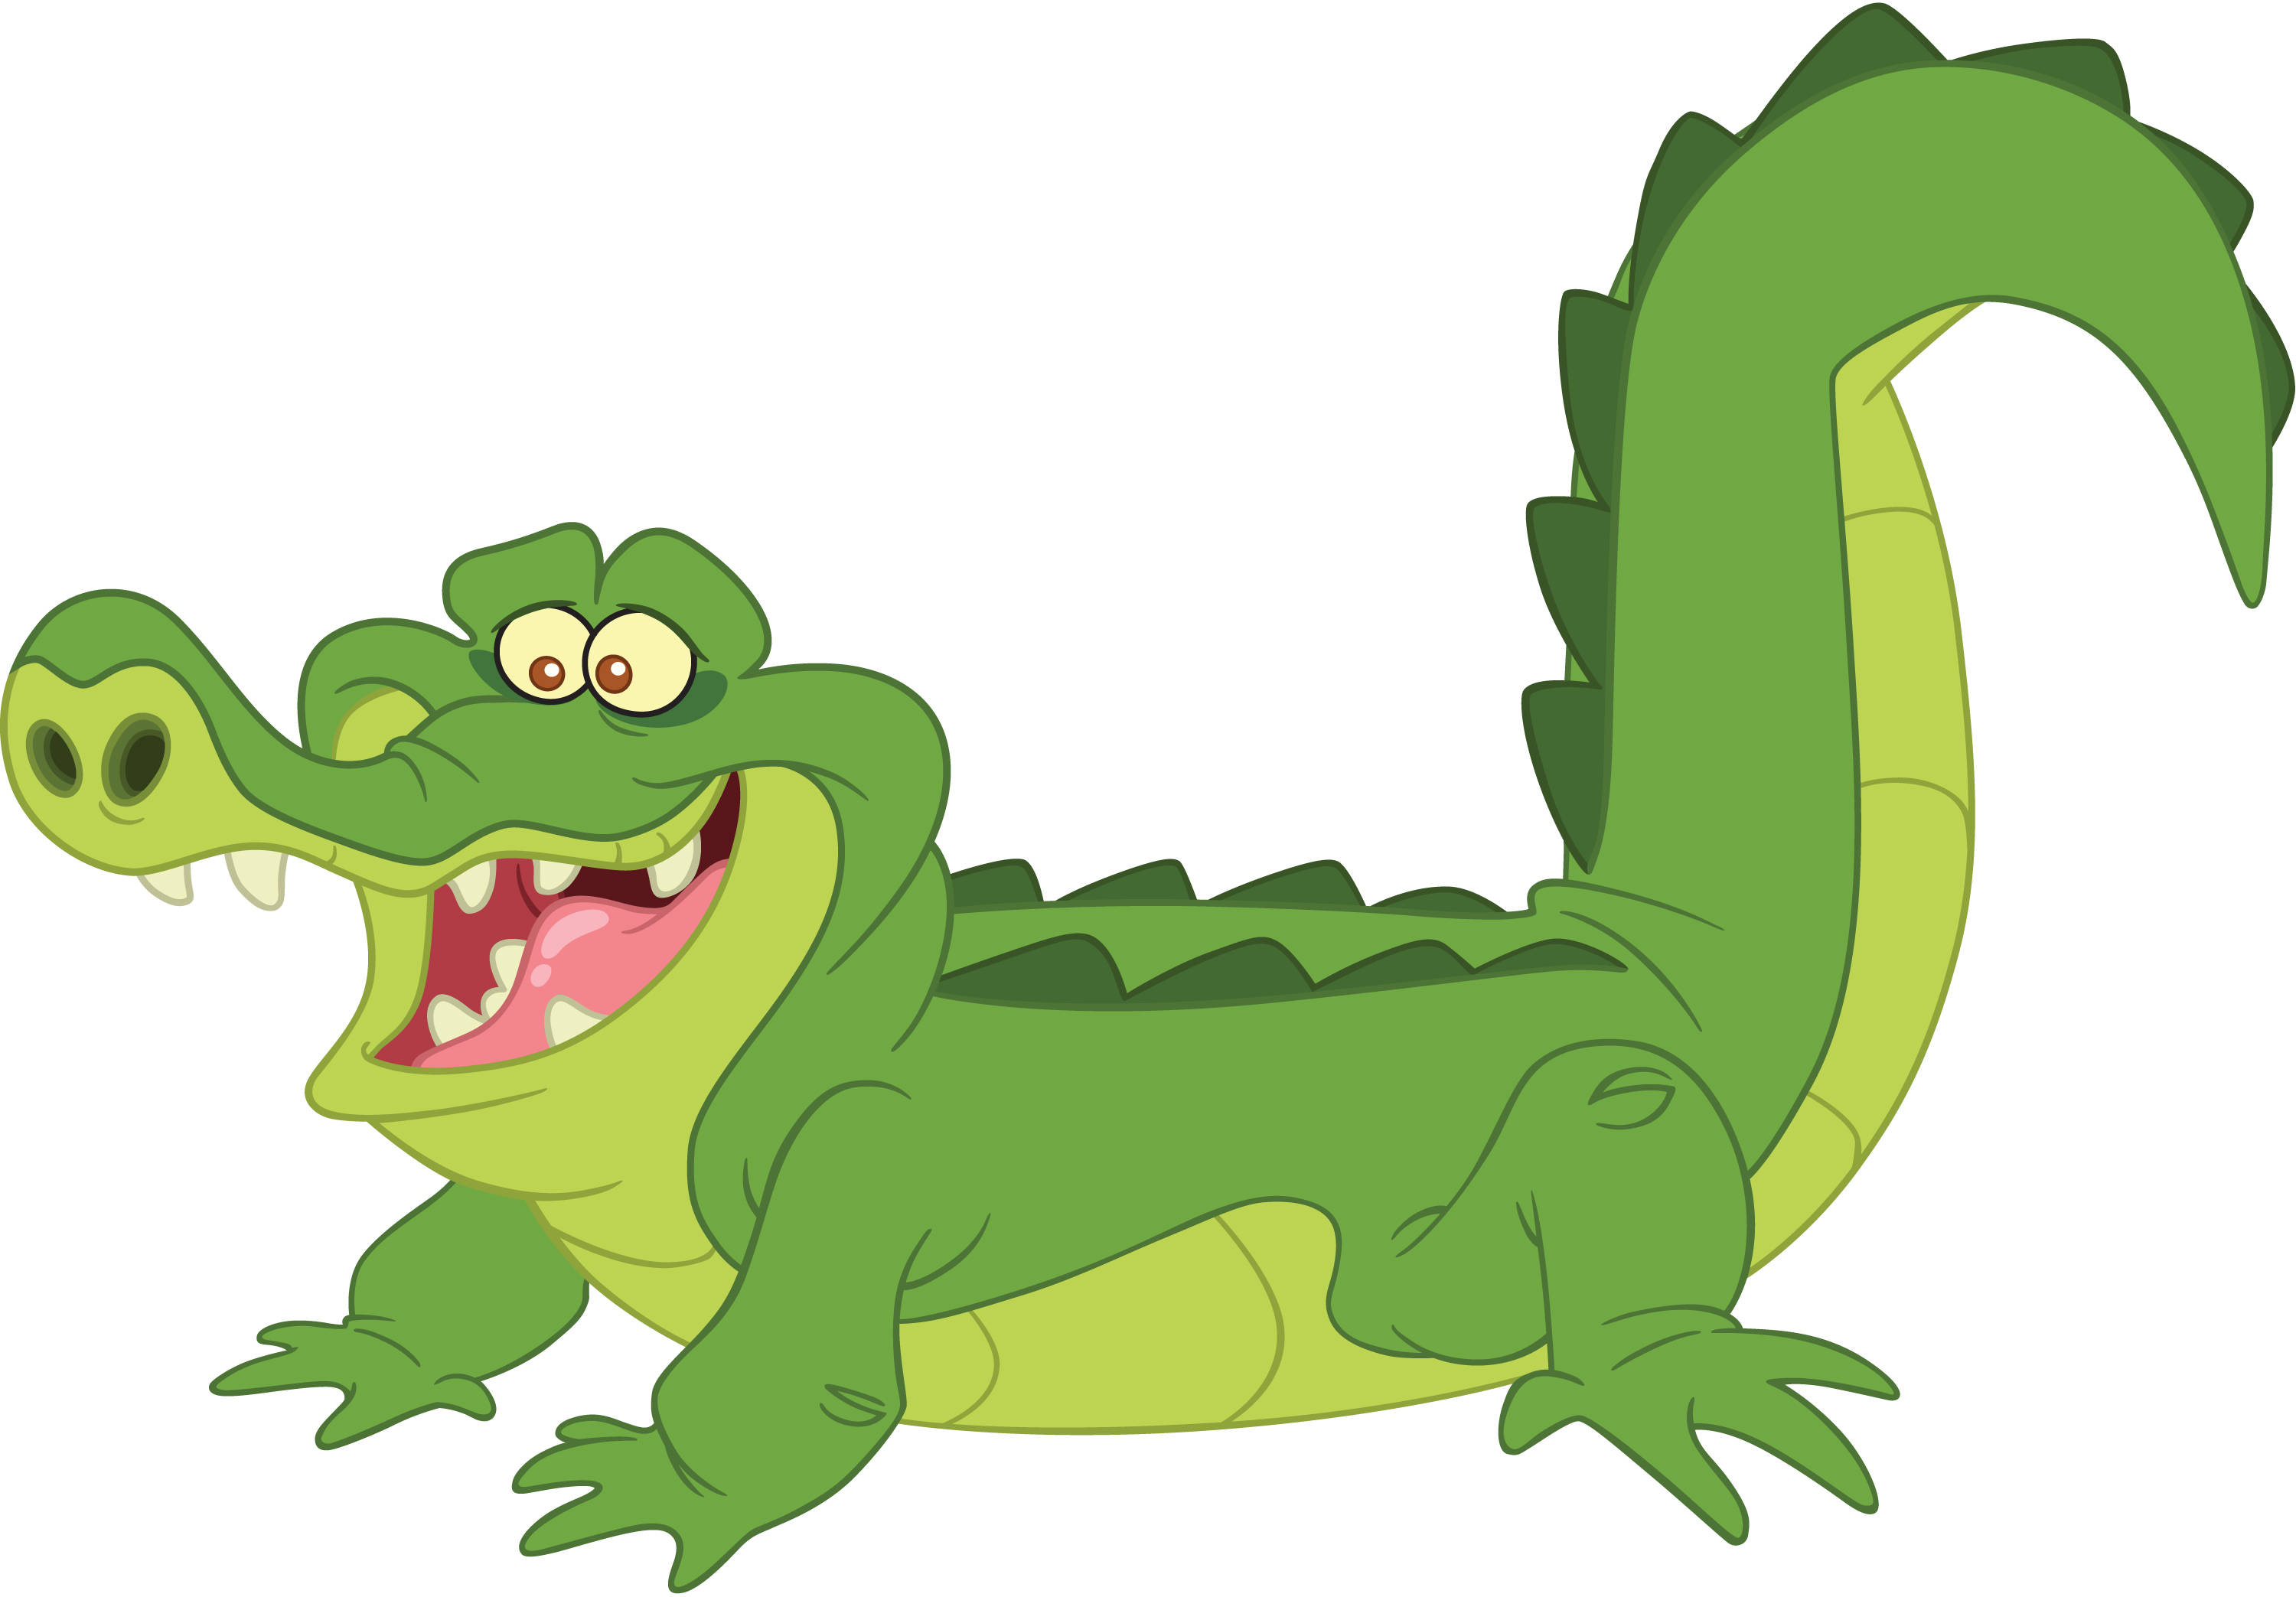 Tick-Tock the Crocodile as he appears in Jake and the Never Land ...